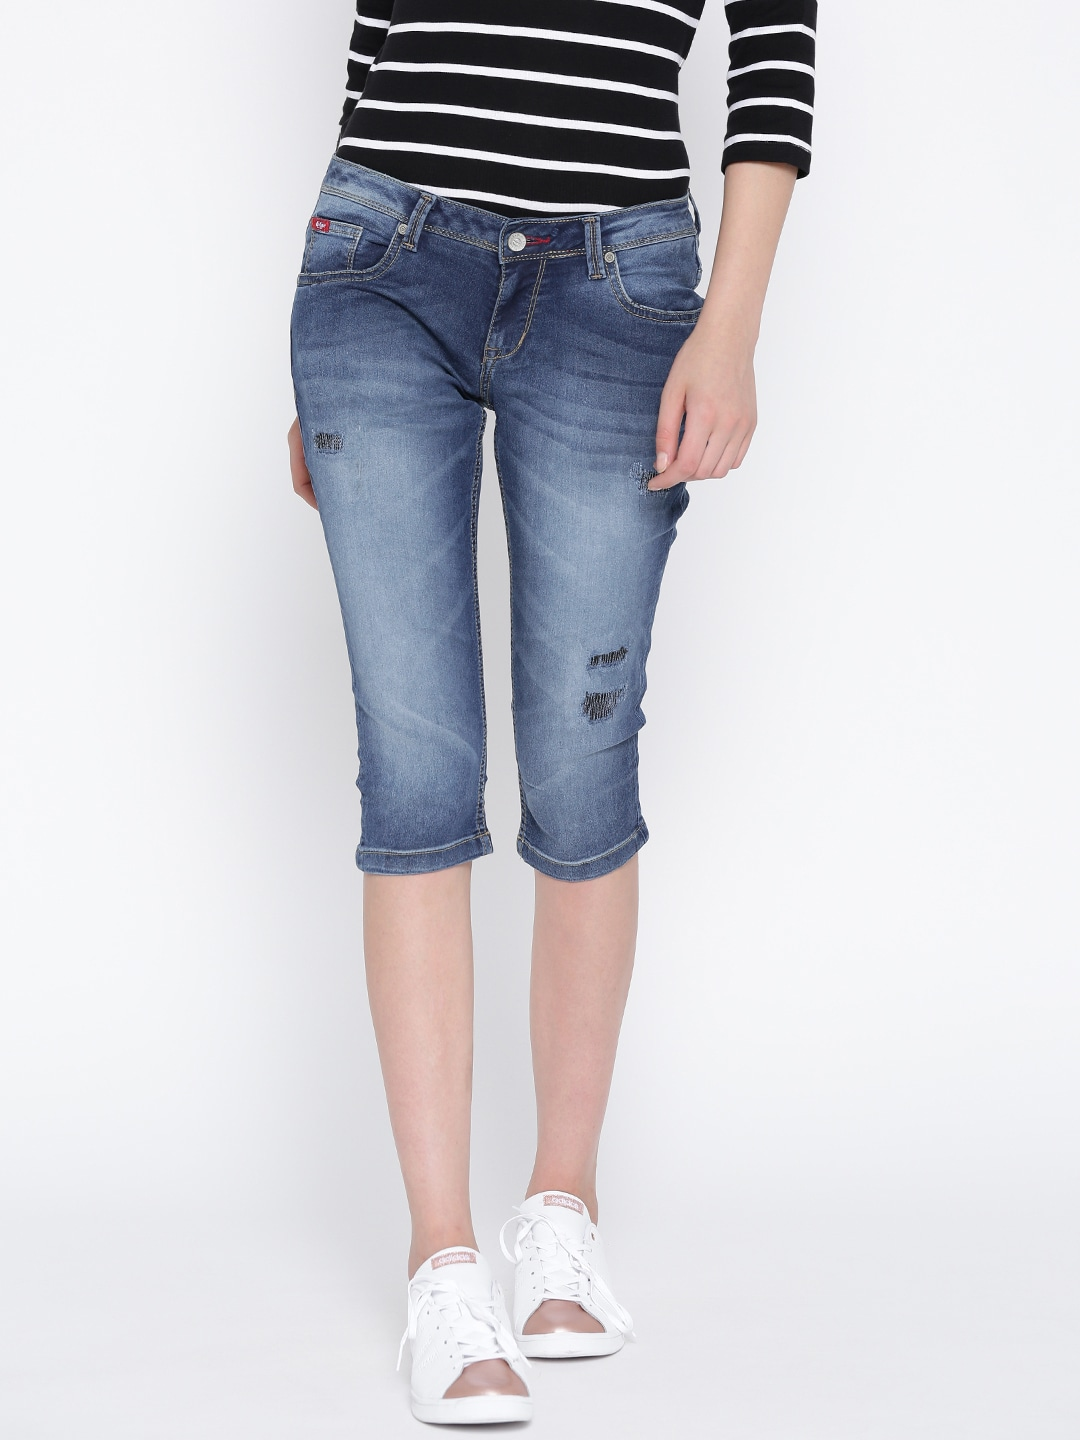 Lee Cooper Blue Slim Fit Denim Capris image